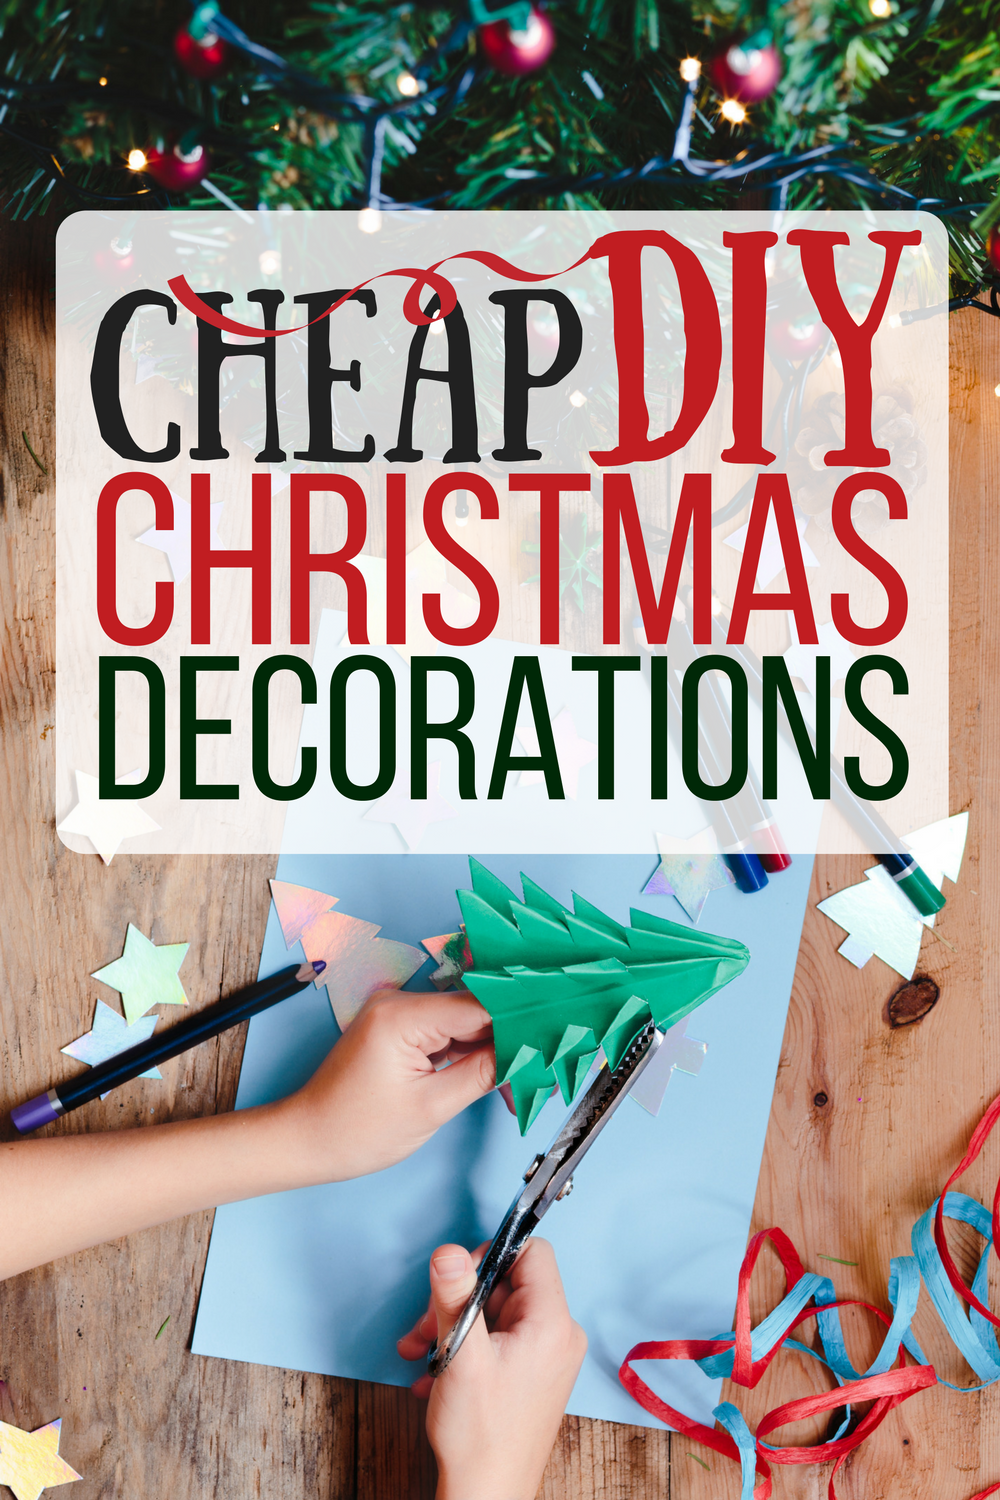 cheap easy diy christmas decorations thanks i was trying to figure out how - Cheap Diy Christmas Decorations